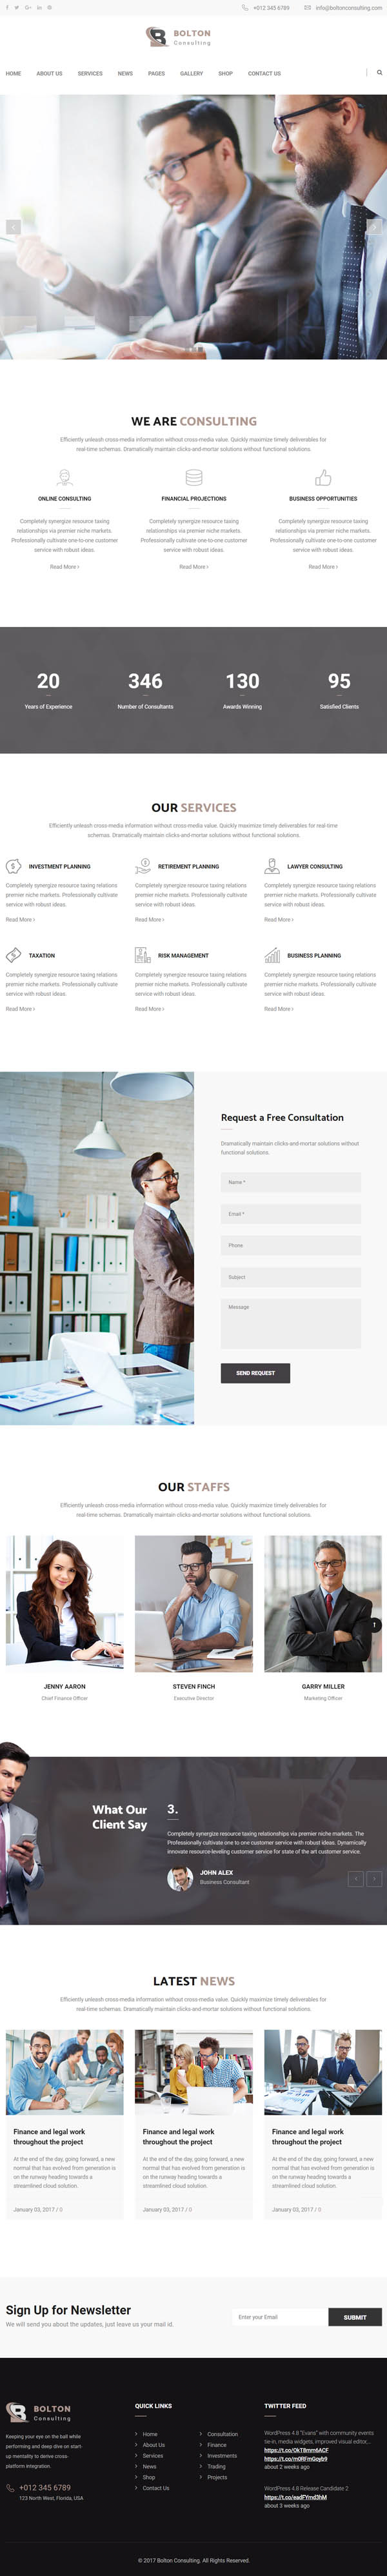 Bolton: Business Consulting and Professional Services WordPress Theme